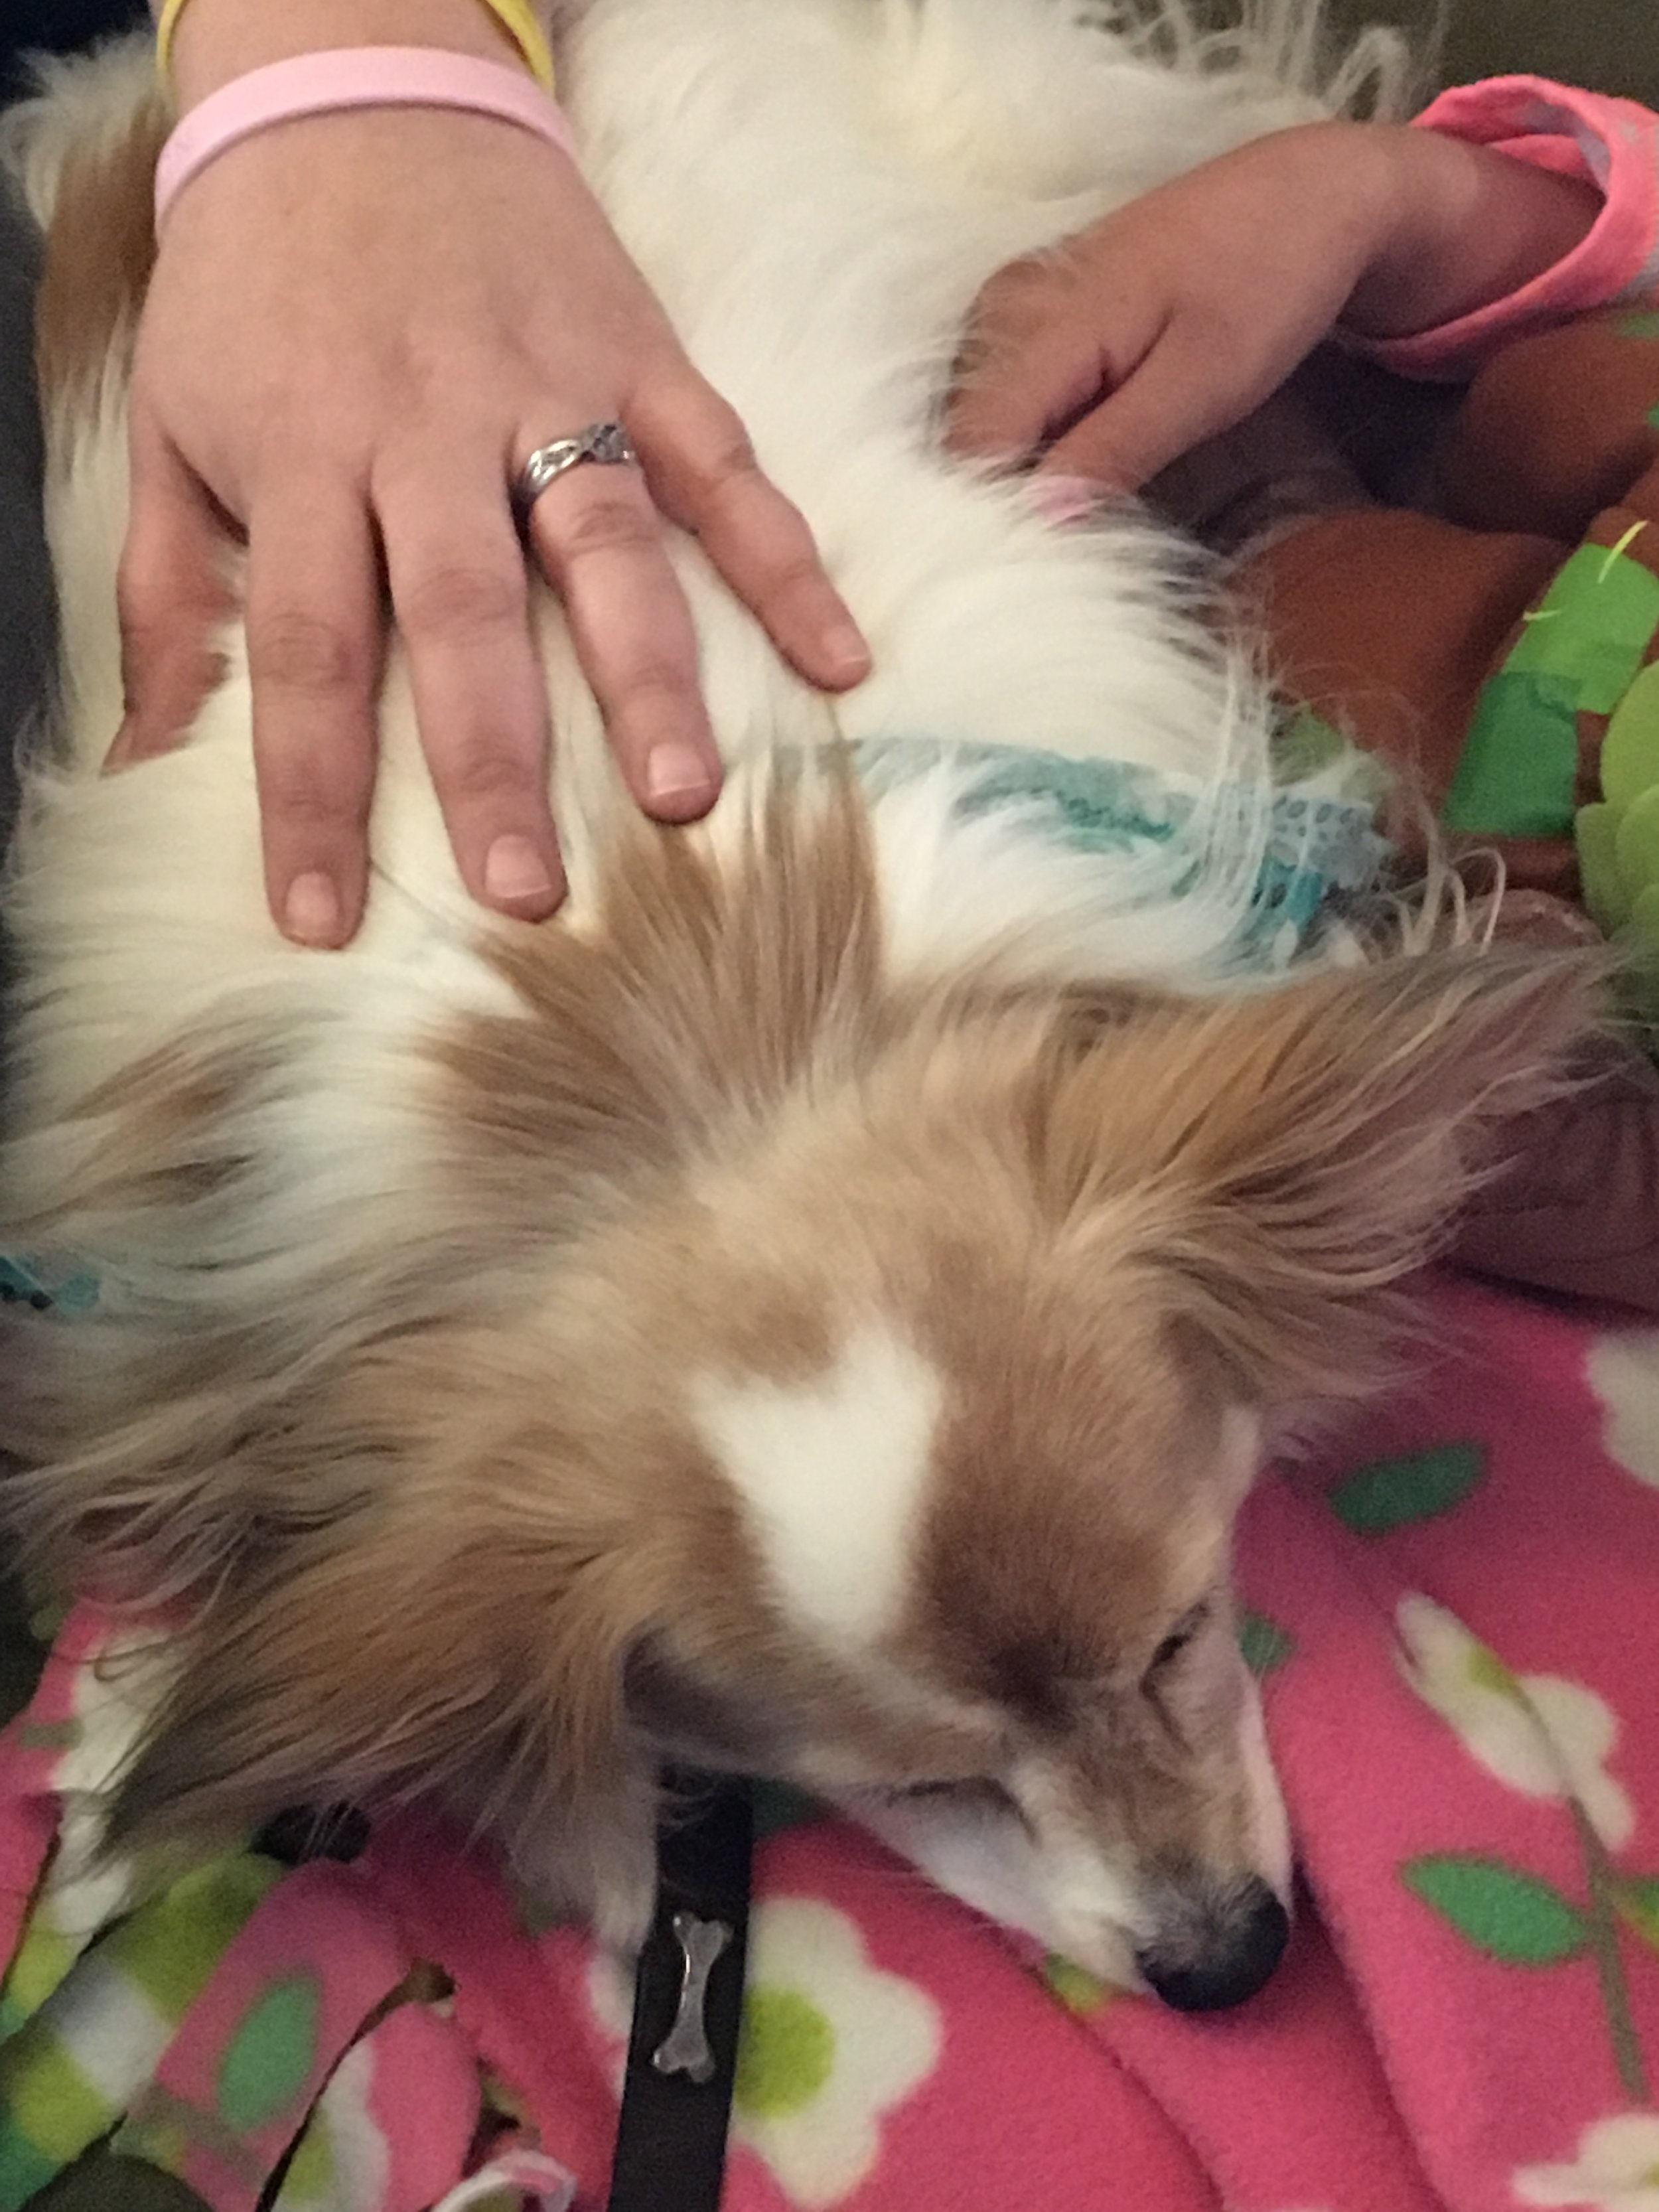 Therapy Dog Misty visiting with families at the Ronald McDonald House. Misty is a Papillon.